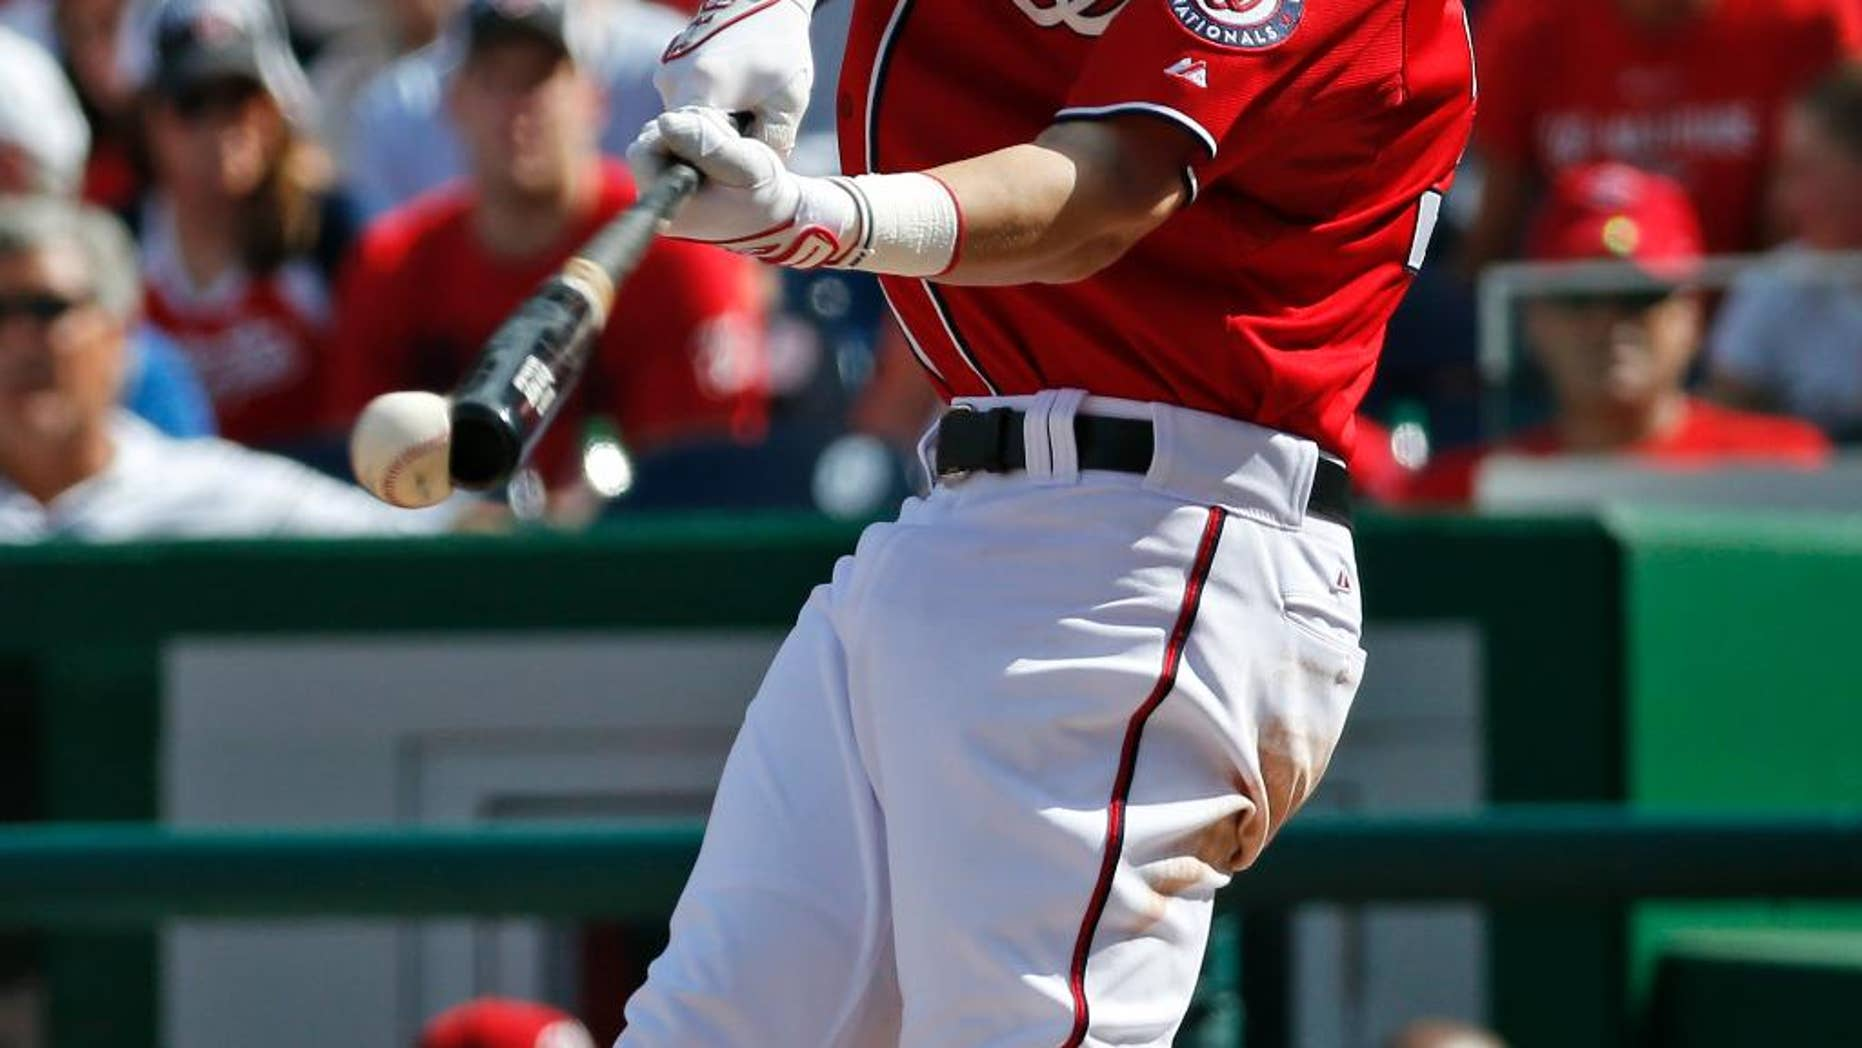 Washington Nationals' Bryce Harper hits a single during the fourth inning of a baseball game against the Miami Marlins, Sunday, Sept. 28, 2014, in Washington. (AP Photo/Alex Brandon)